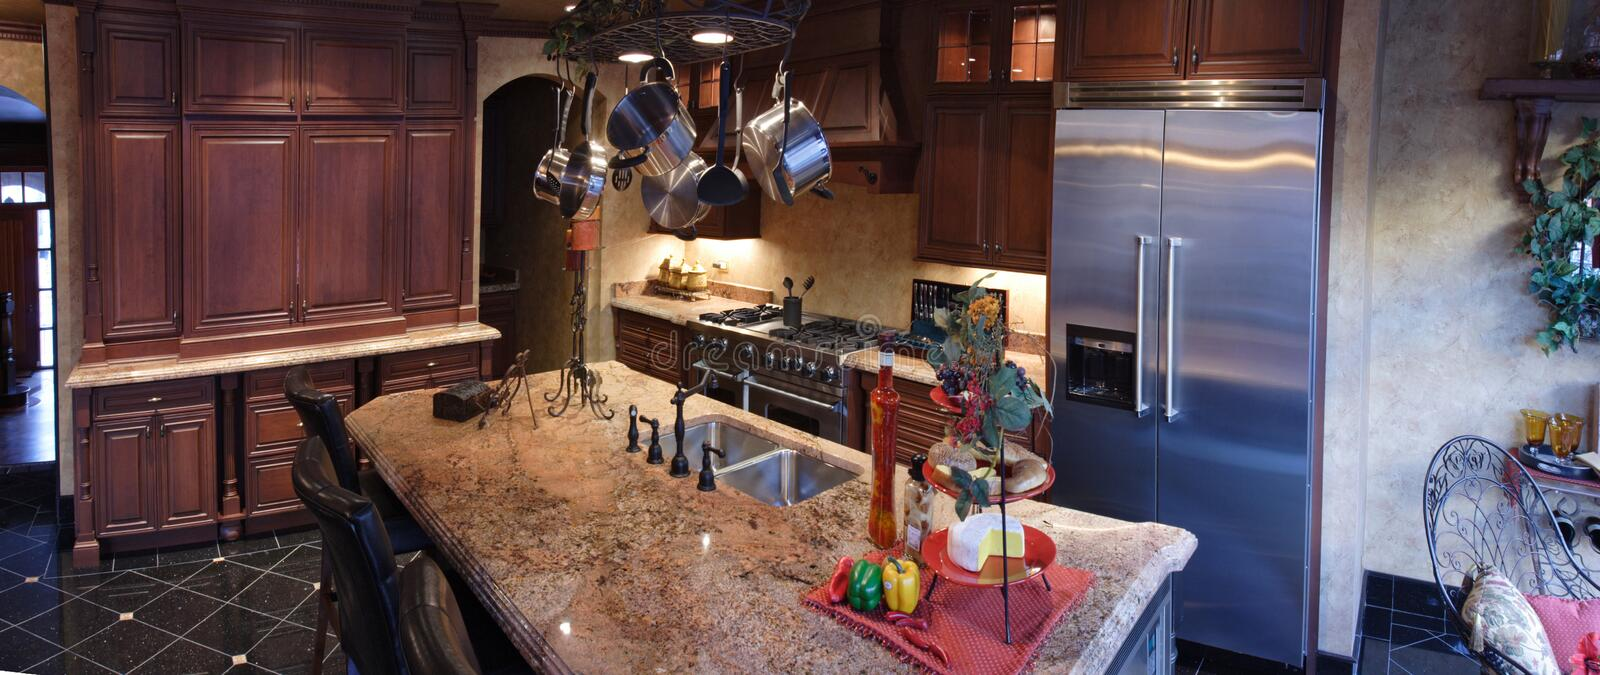 Kitchen. Exclusive kitchen with granite countertops royalty free stock photography